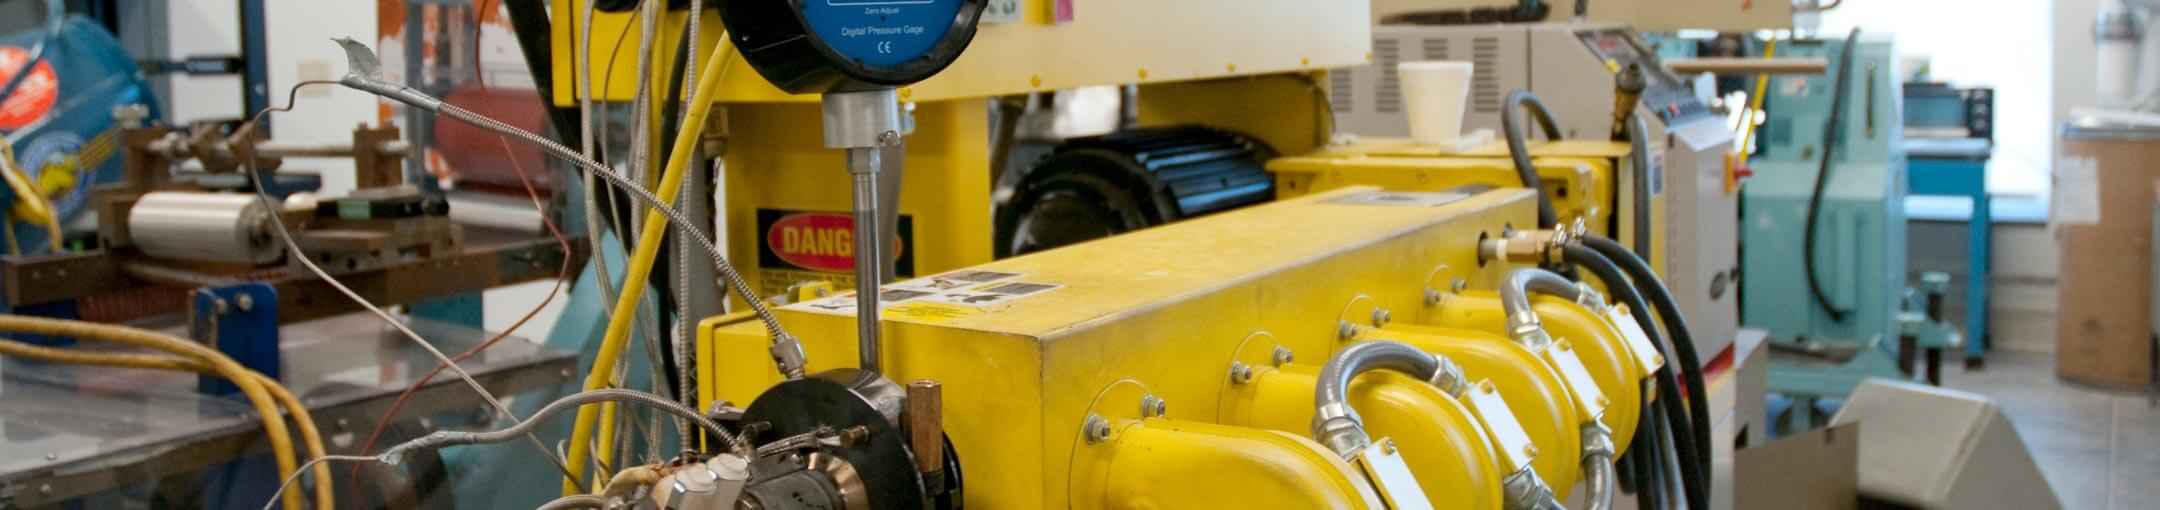 Close-up photo of yellow manufacturing equipment.